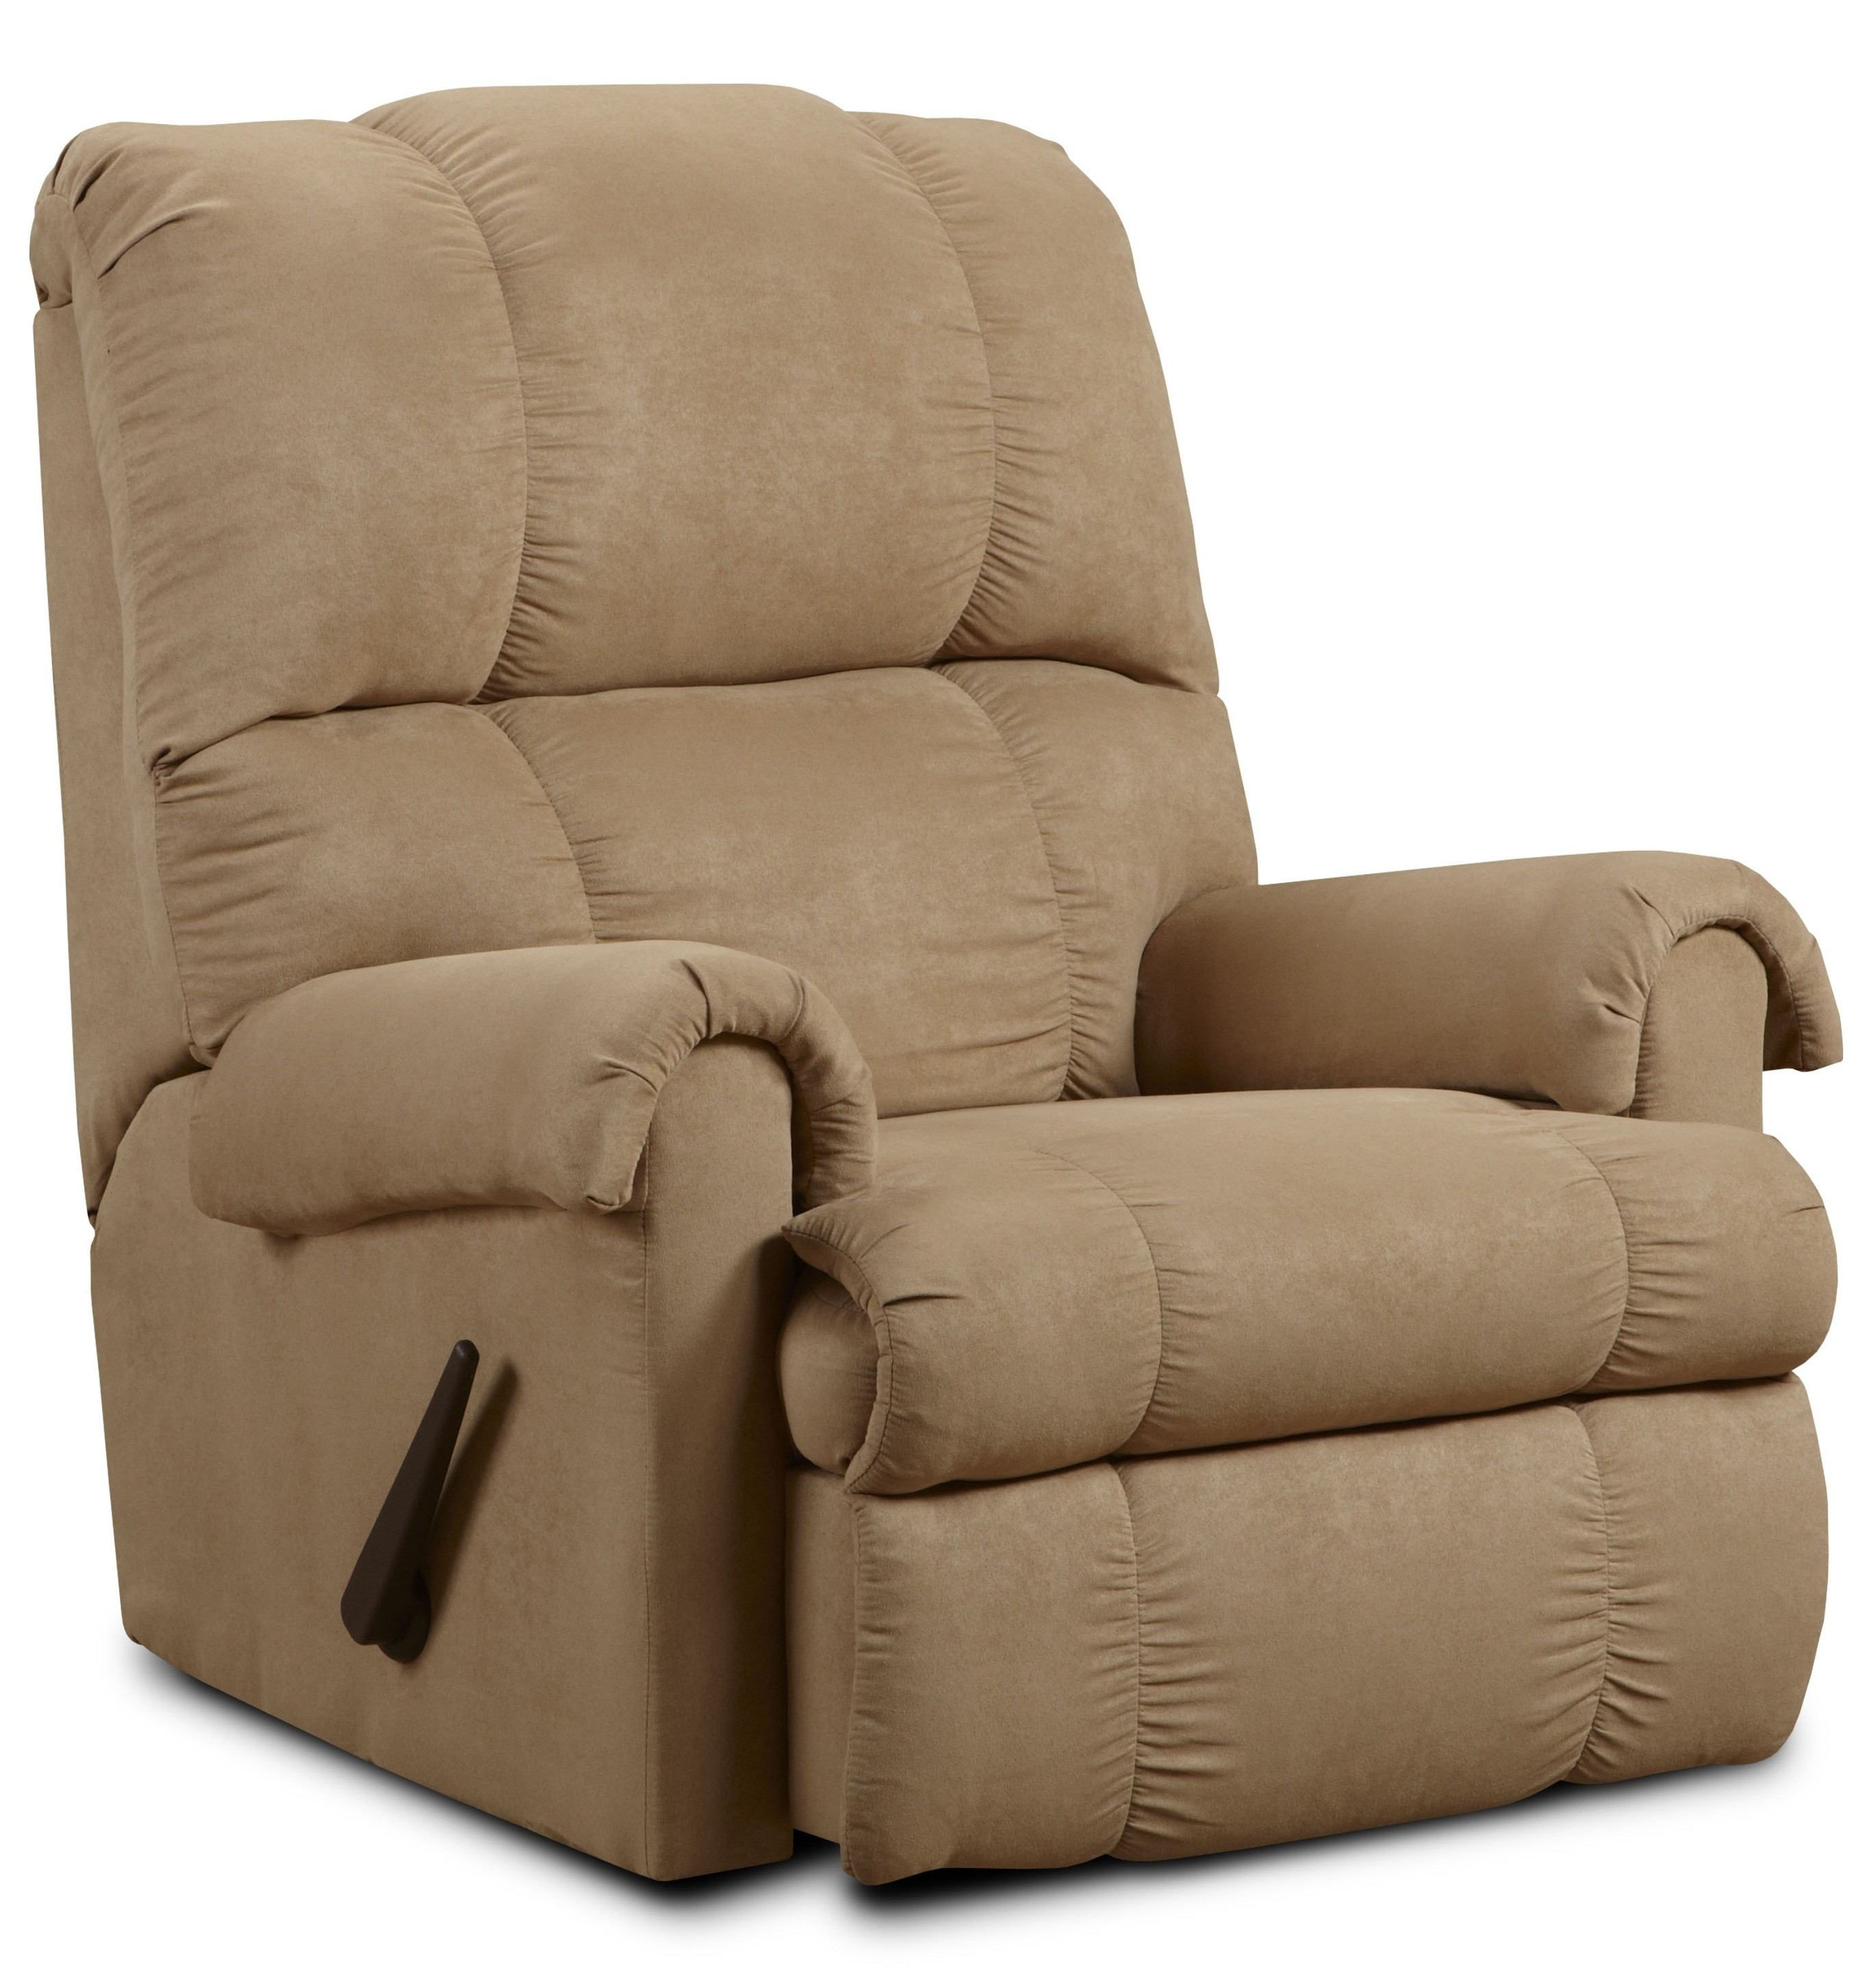 Furniture: Surprising Simmons Recliners For Contemporary Living Room Throughout Rogan Leather Cafe Latte Swivel Glider Recliners (Image 11 of 25)